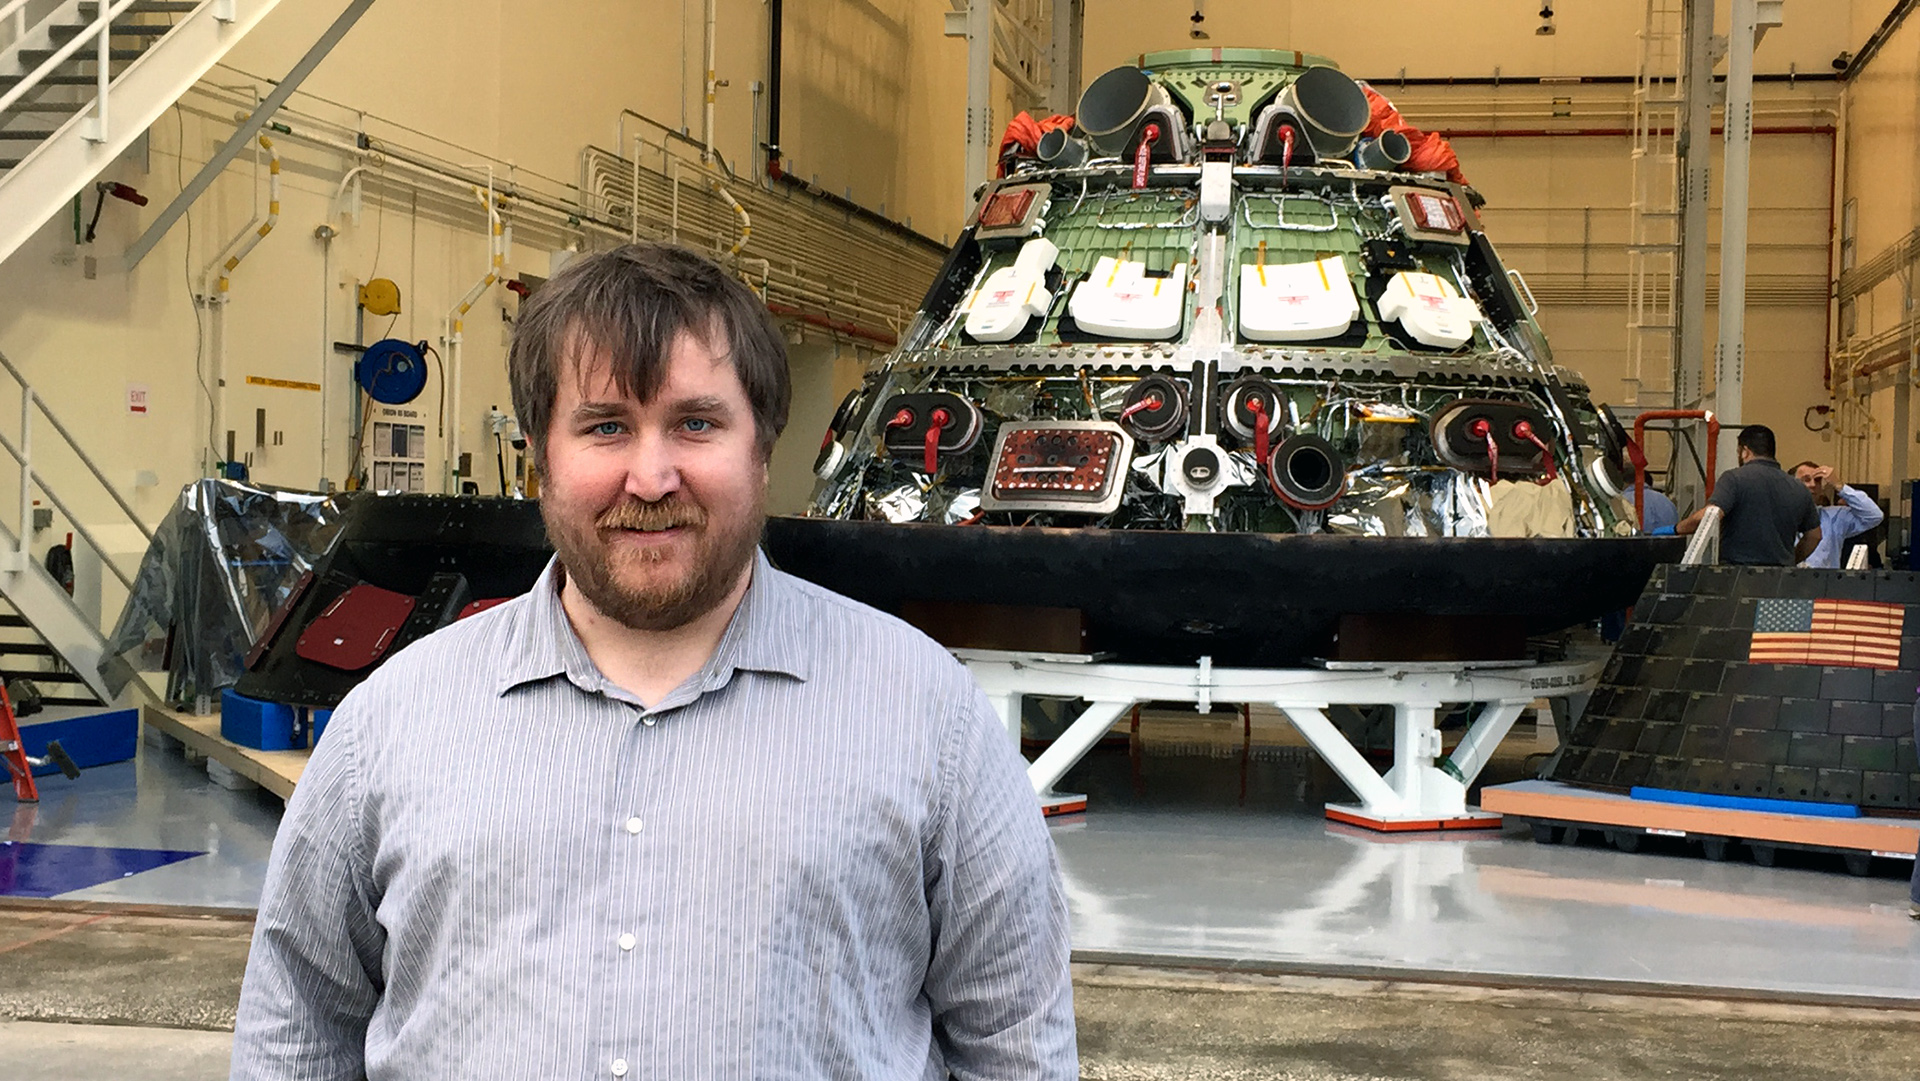 Zach Pirtle in front of an Orion spacecraft